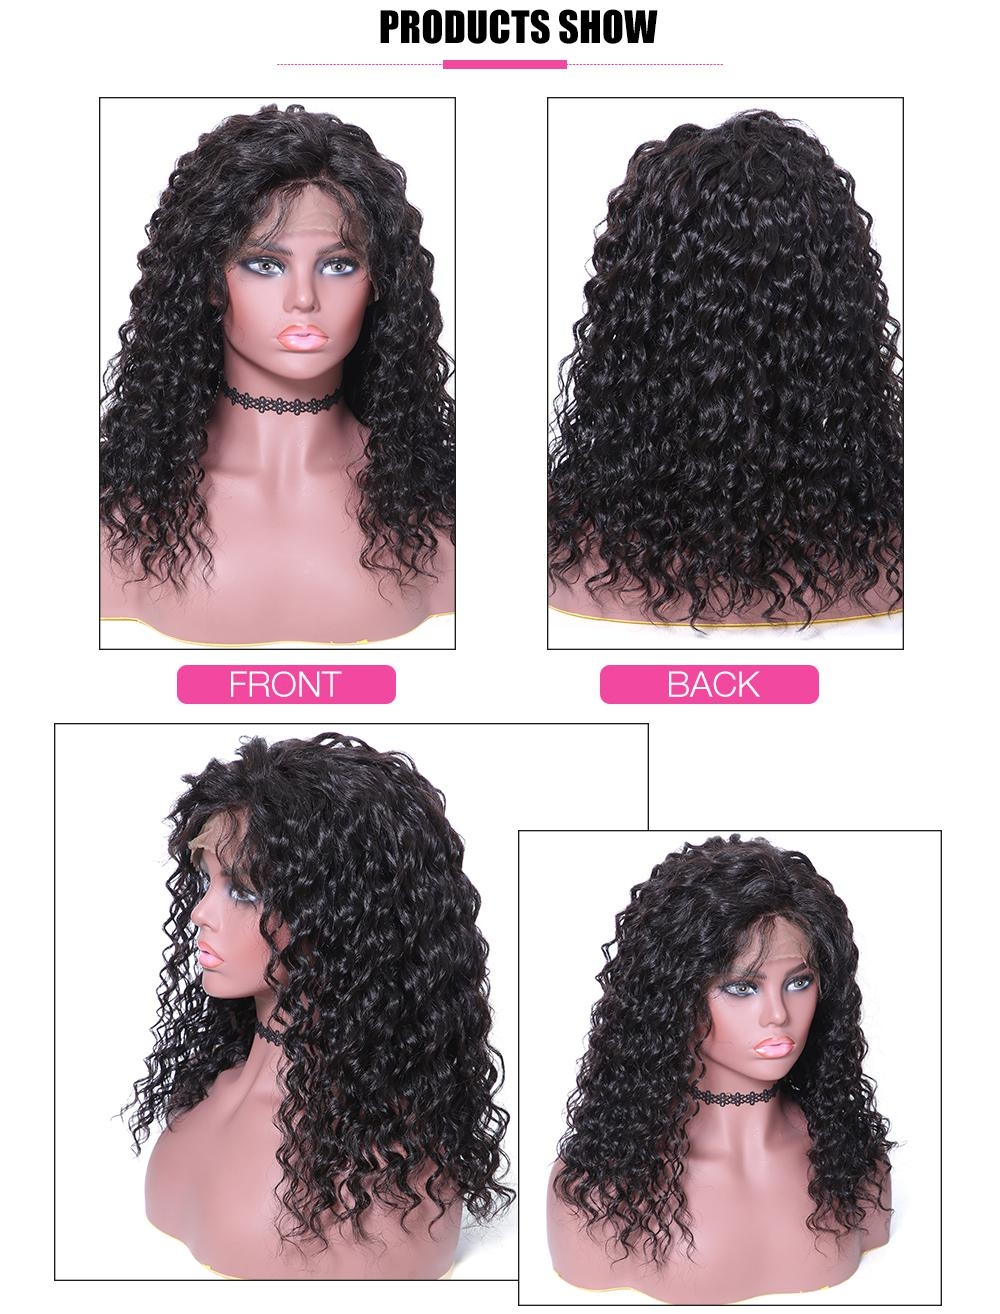 AfricanMall Medium Length Water Wave Lace Frontal Human Hair Wig